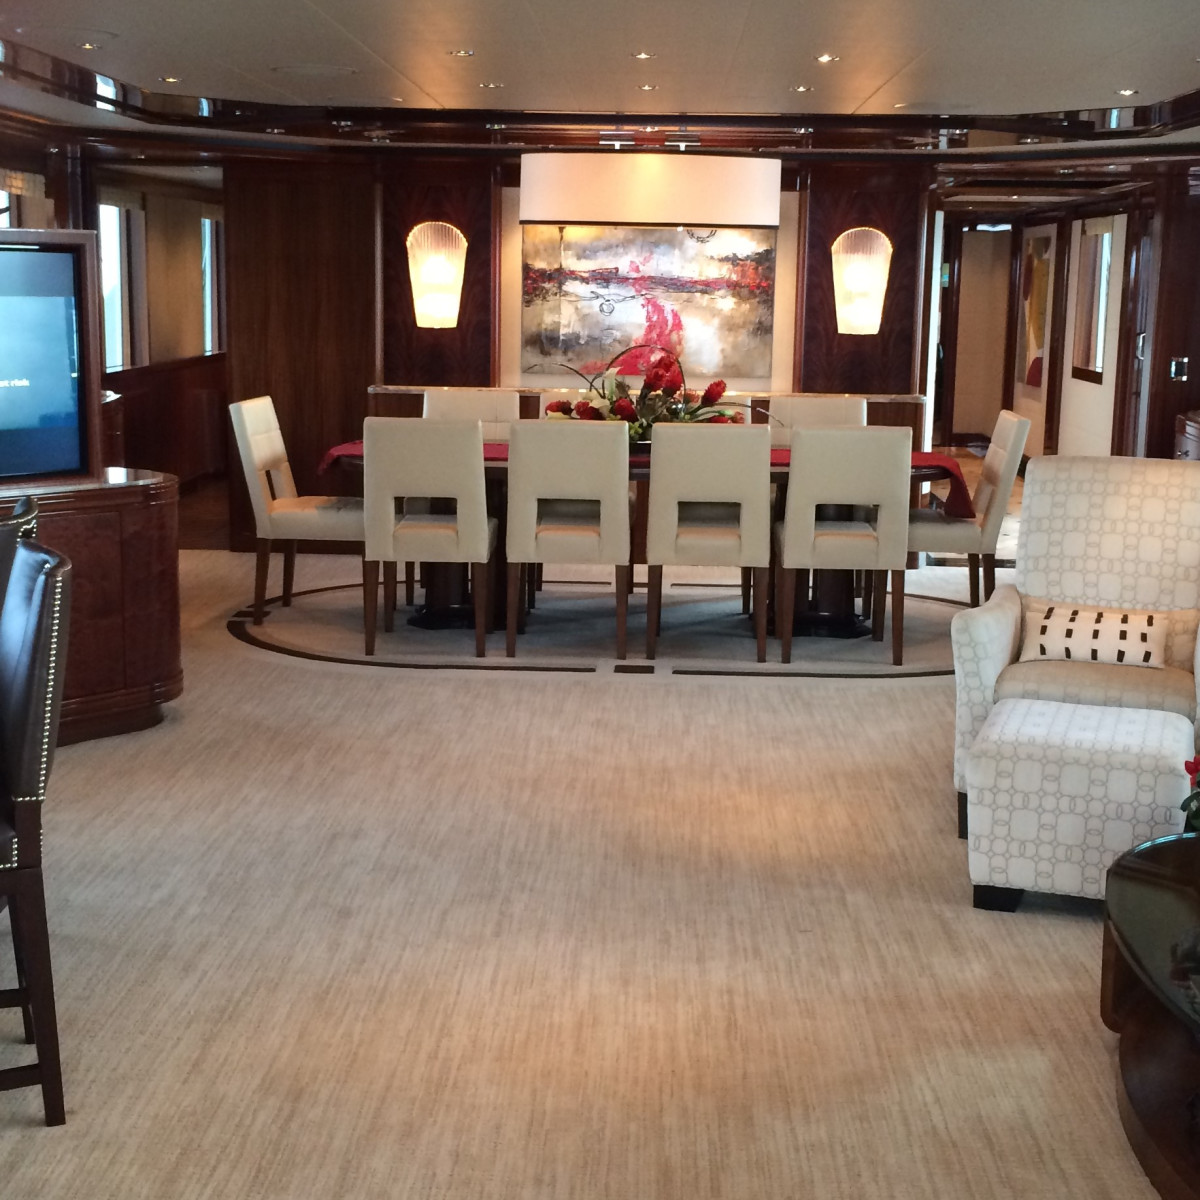 Tilman Fertitta yacht interior in Biloxi May 2014